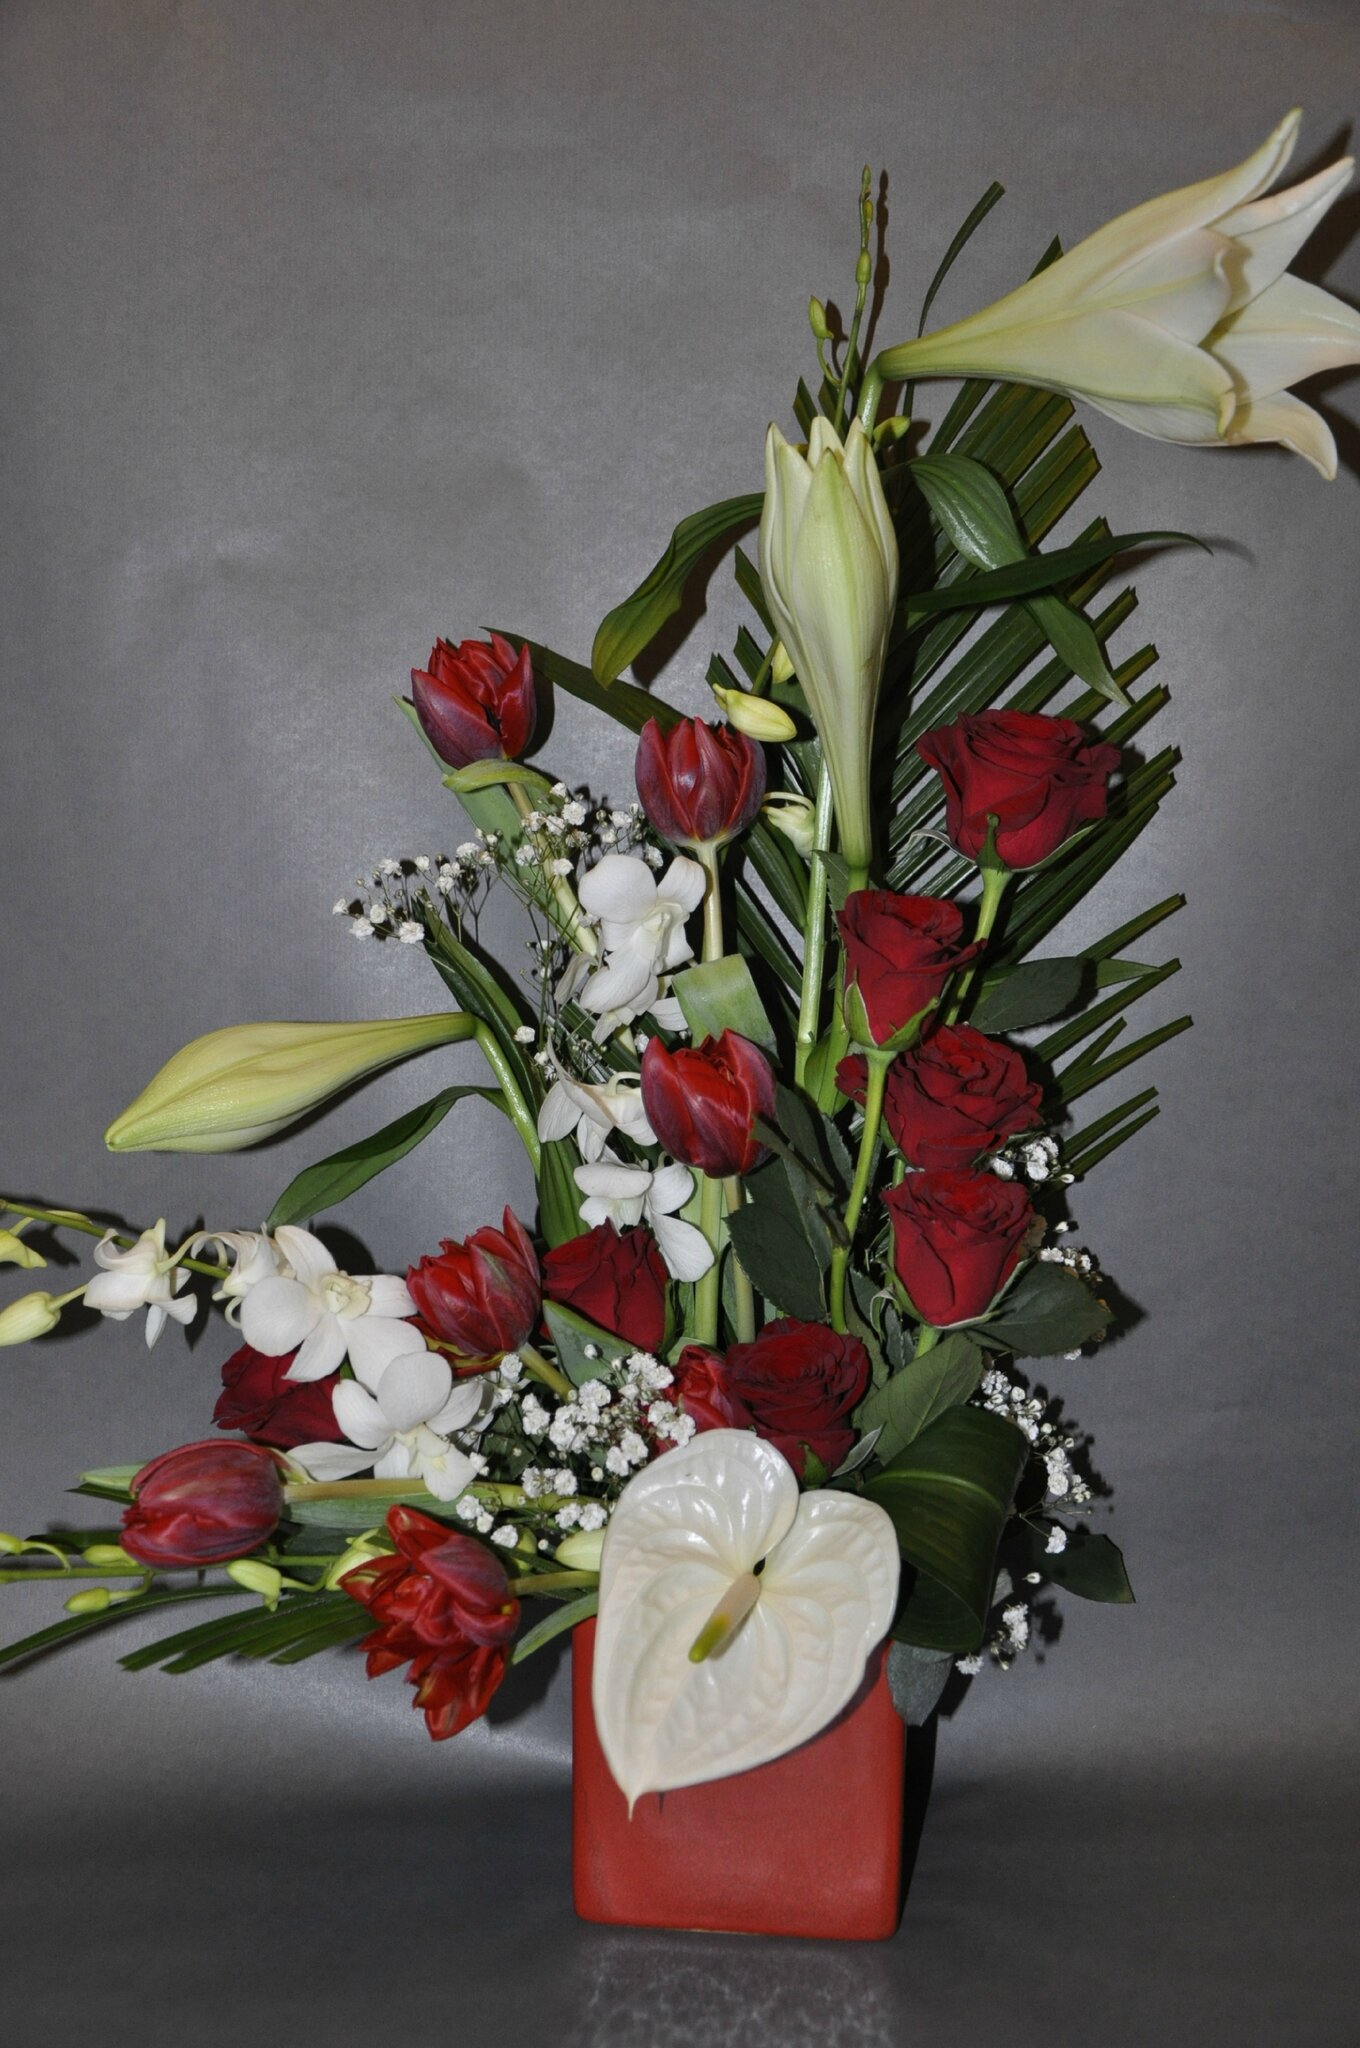 Composition st valentin photo de 2 fetes l 39 arum des sens - Composition st valentin ...